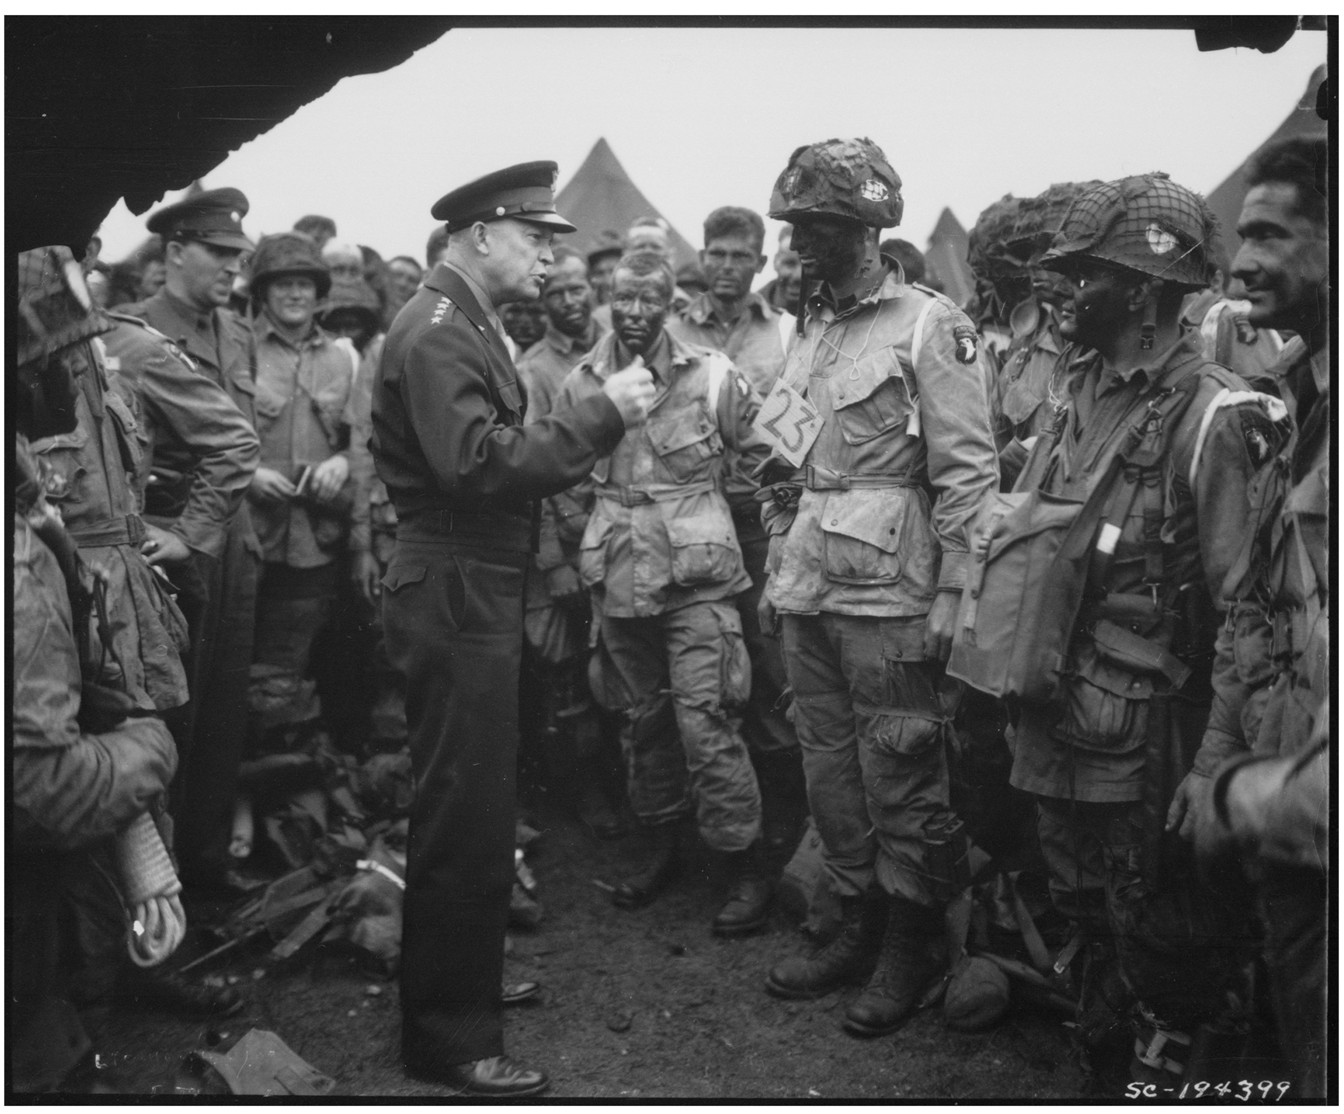 Photograph of General Dwight D. Eisenhower Giving the Order of the Day